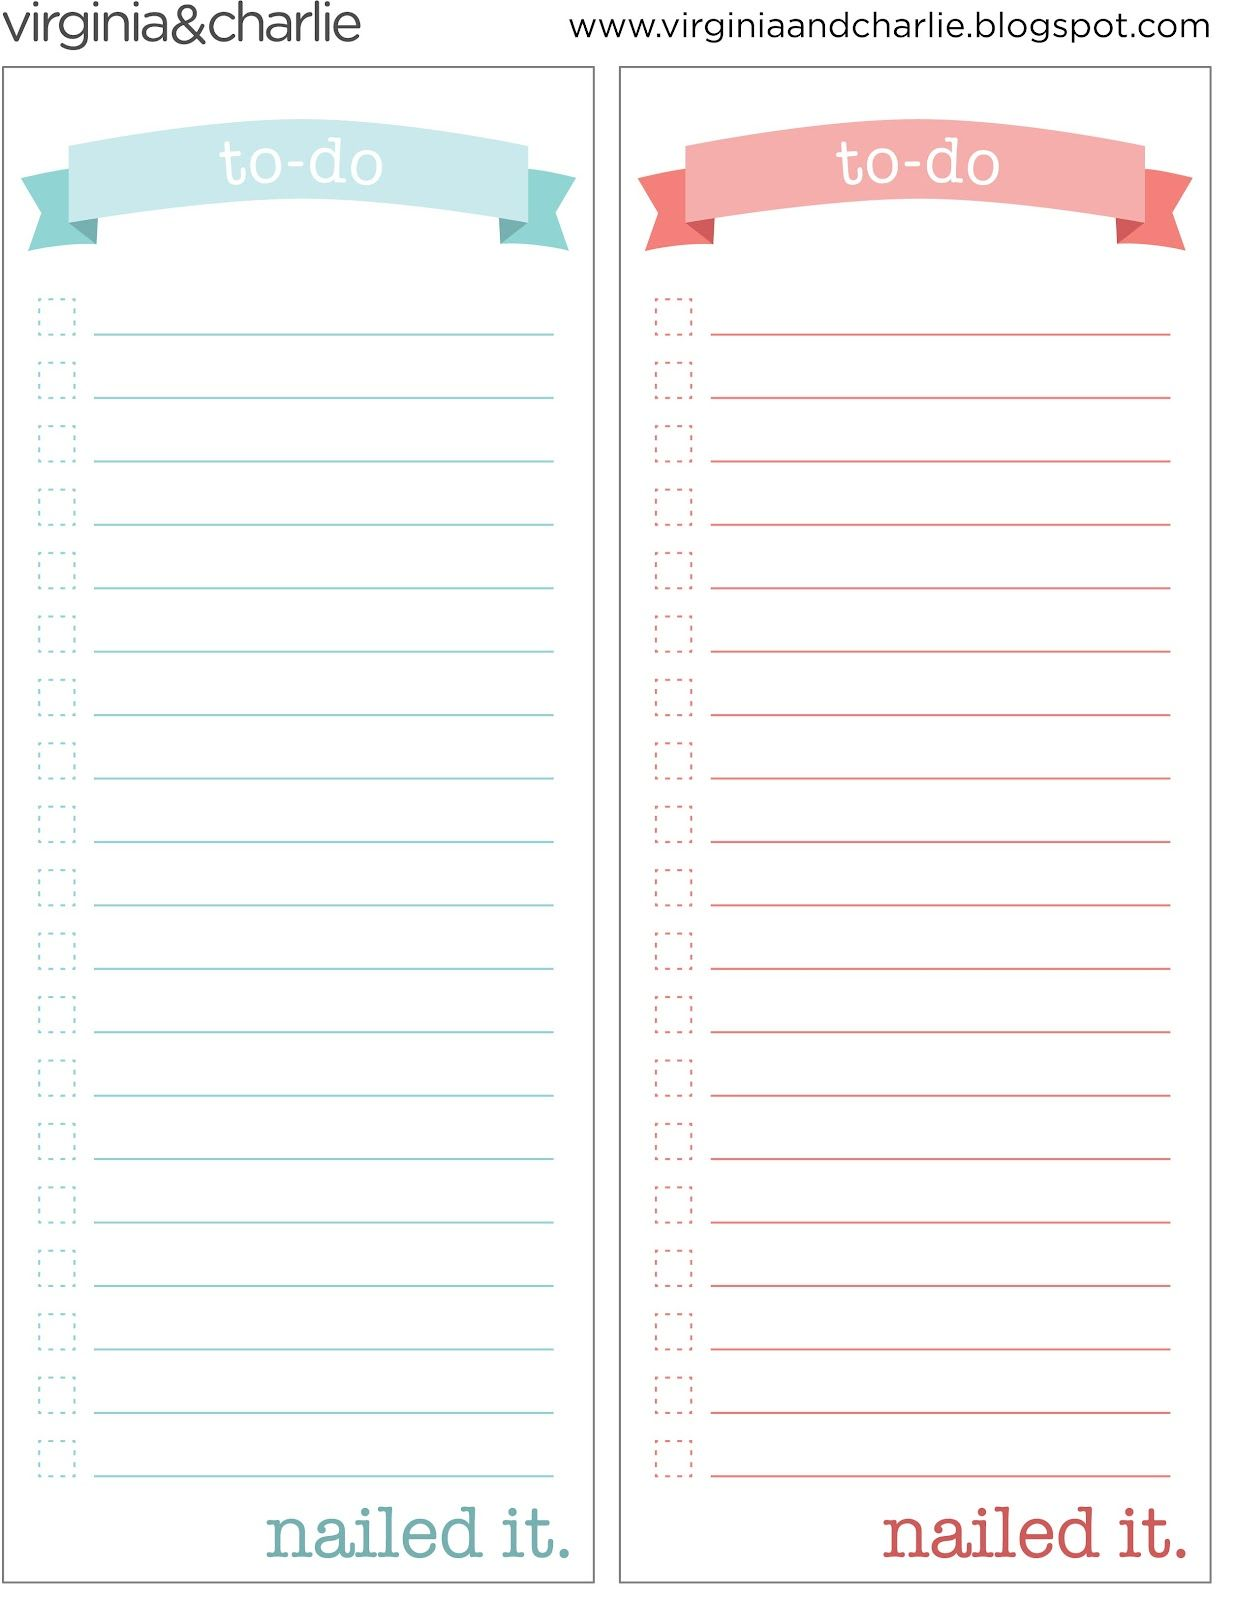 Things To Do Template Pdf  Virginia And Charlie Printable ToDo